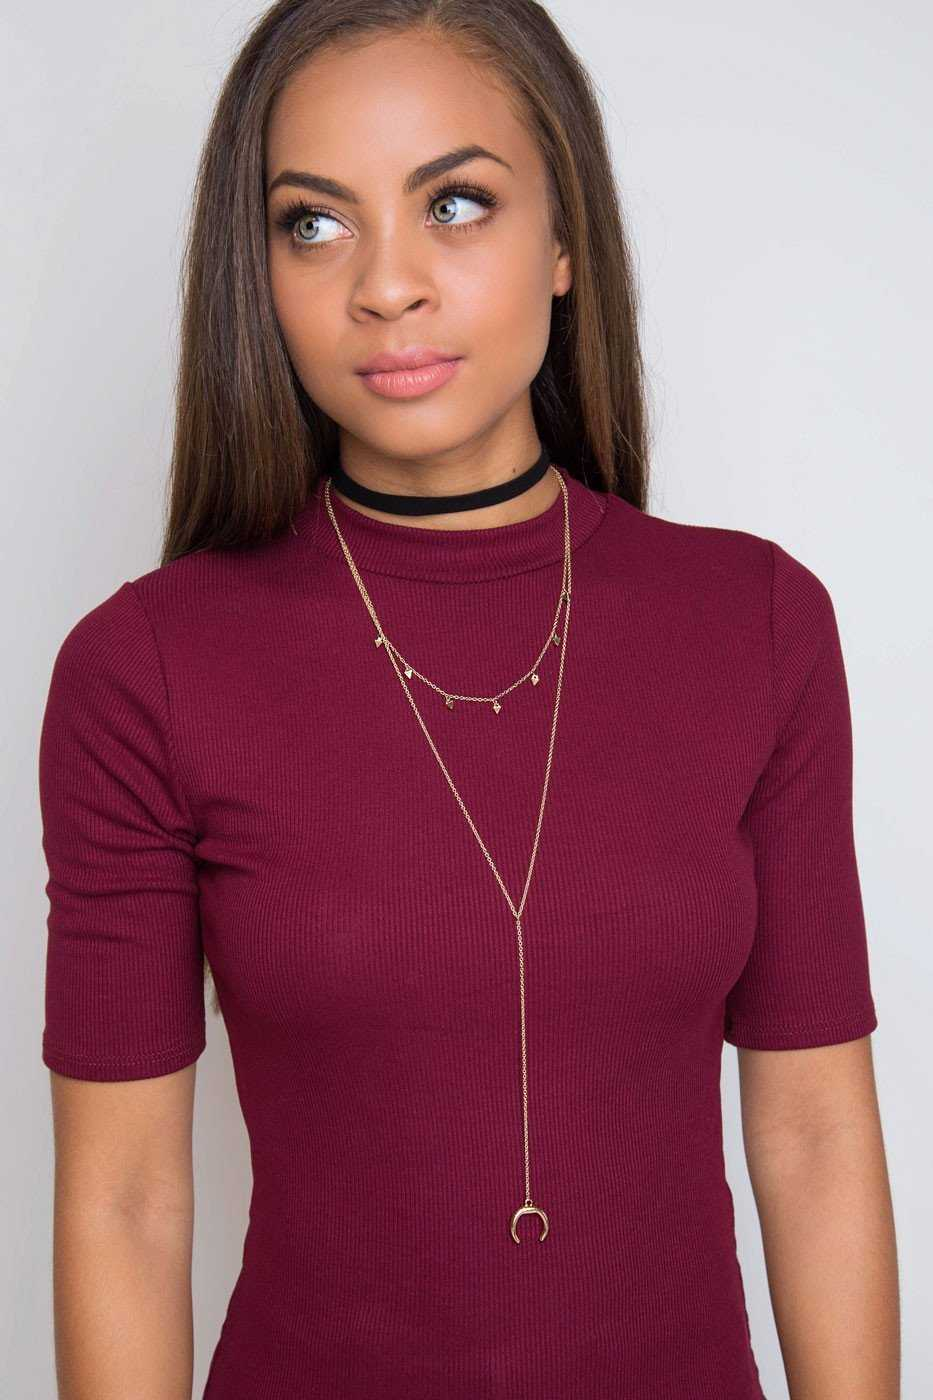 Jewelry - Anything Goes Choker Set